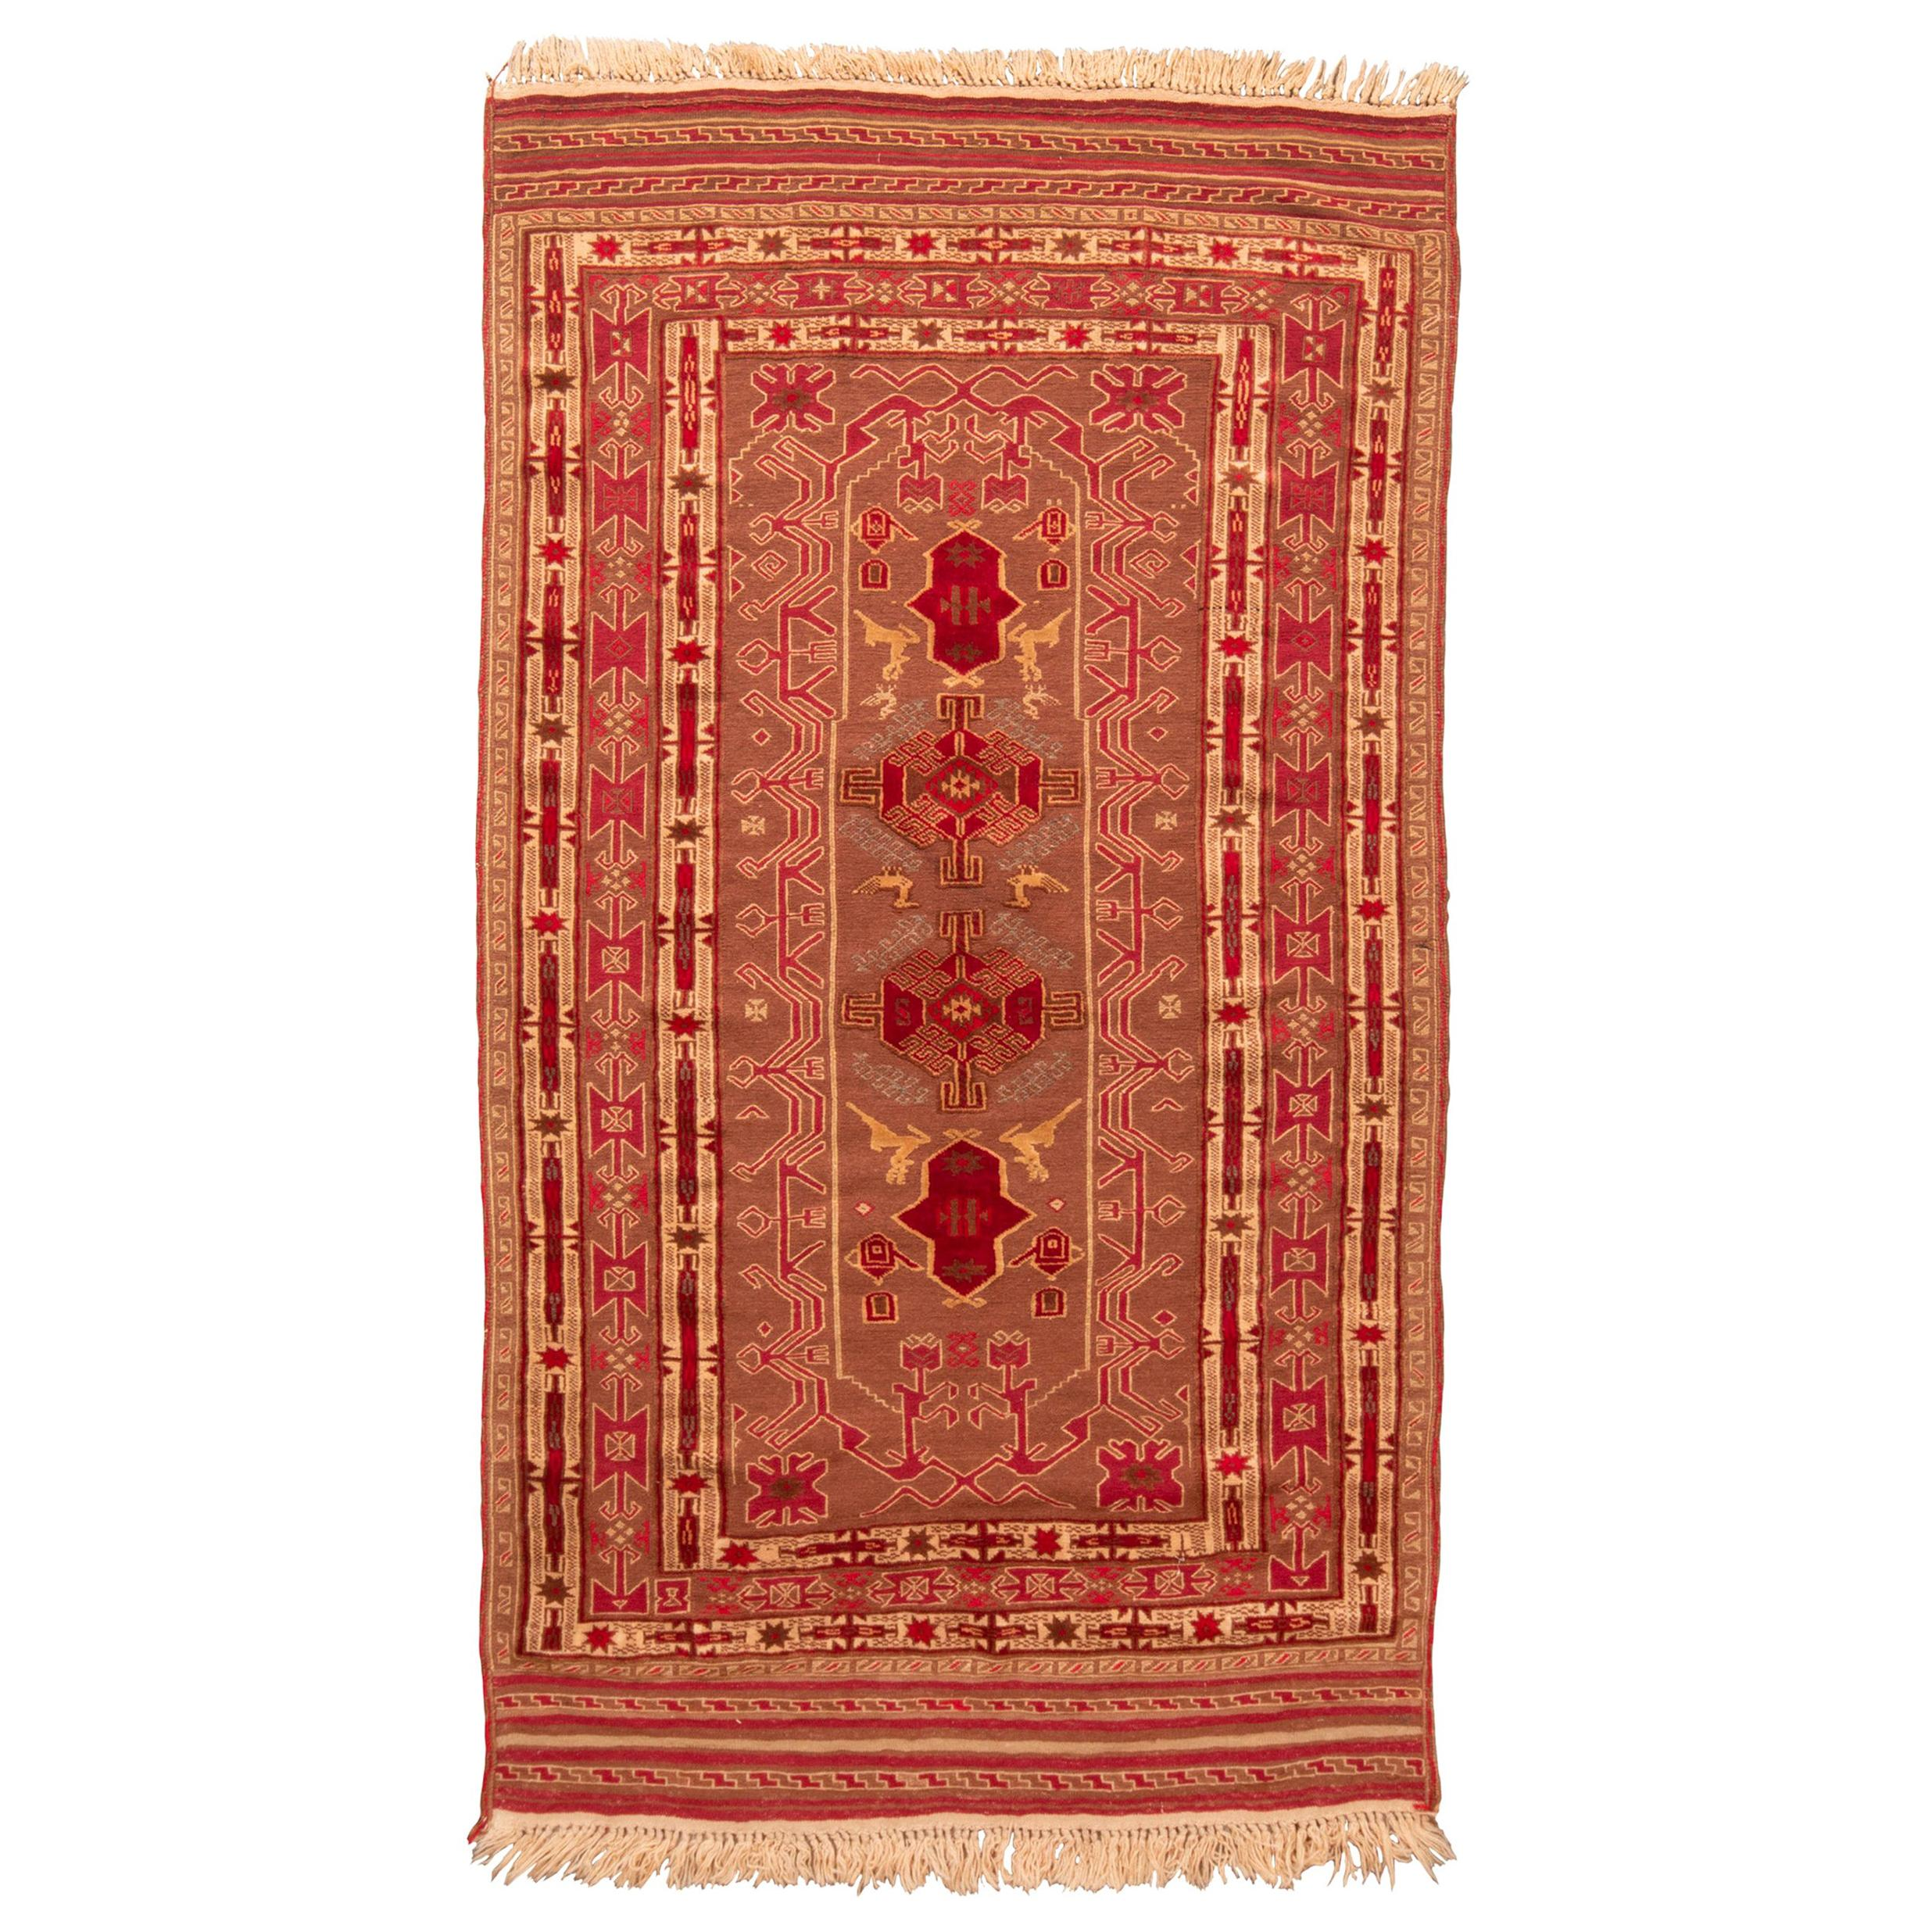 Vintage Persian Transitional Red and Golden-Beige Wool Kilim